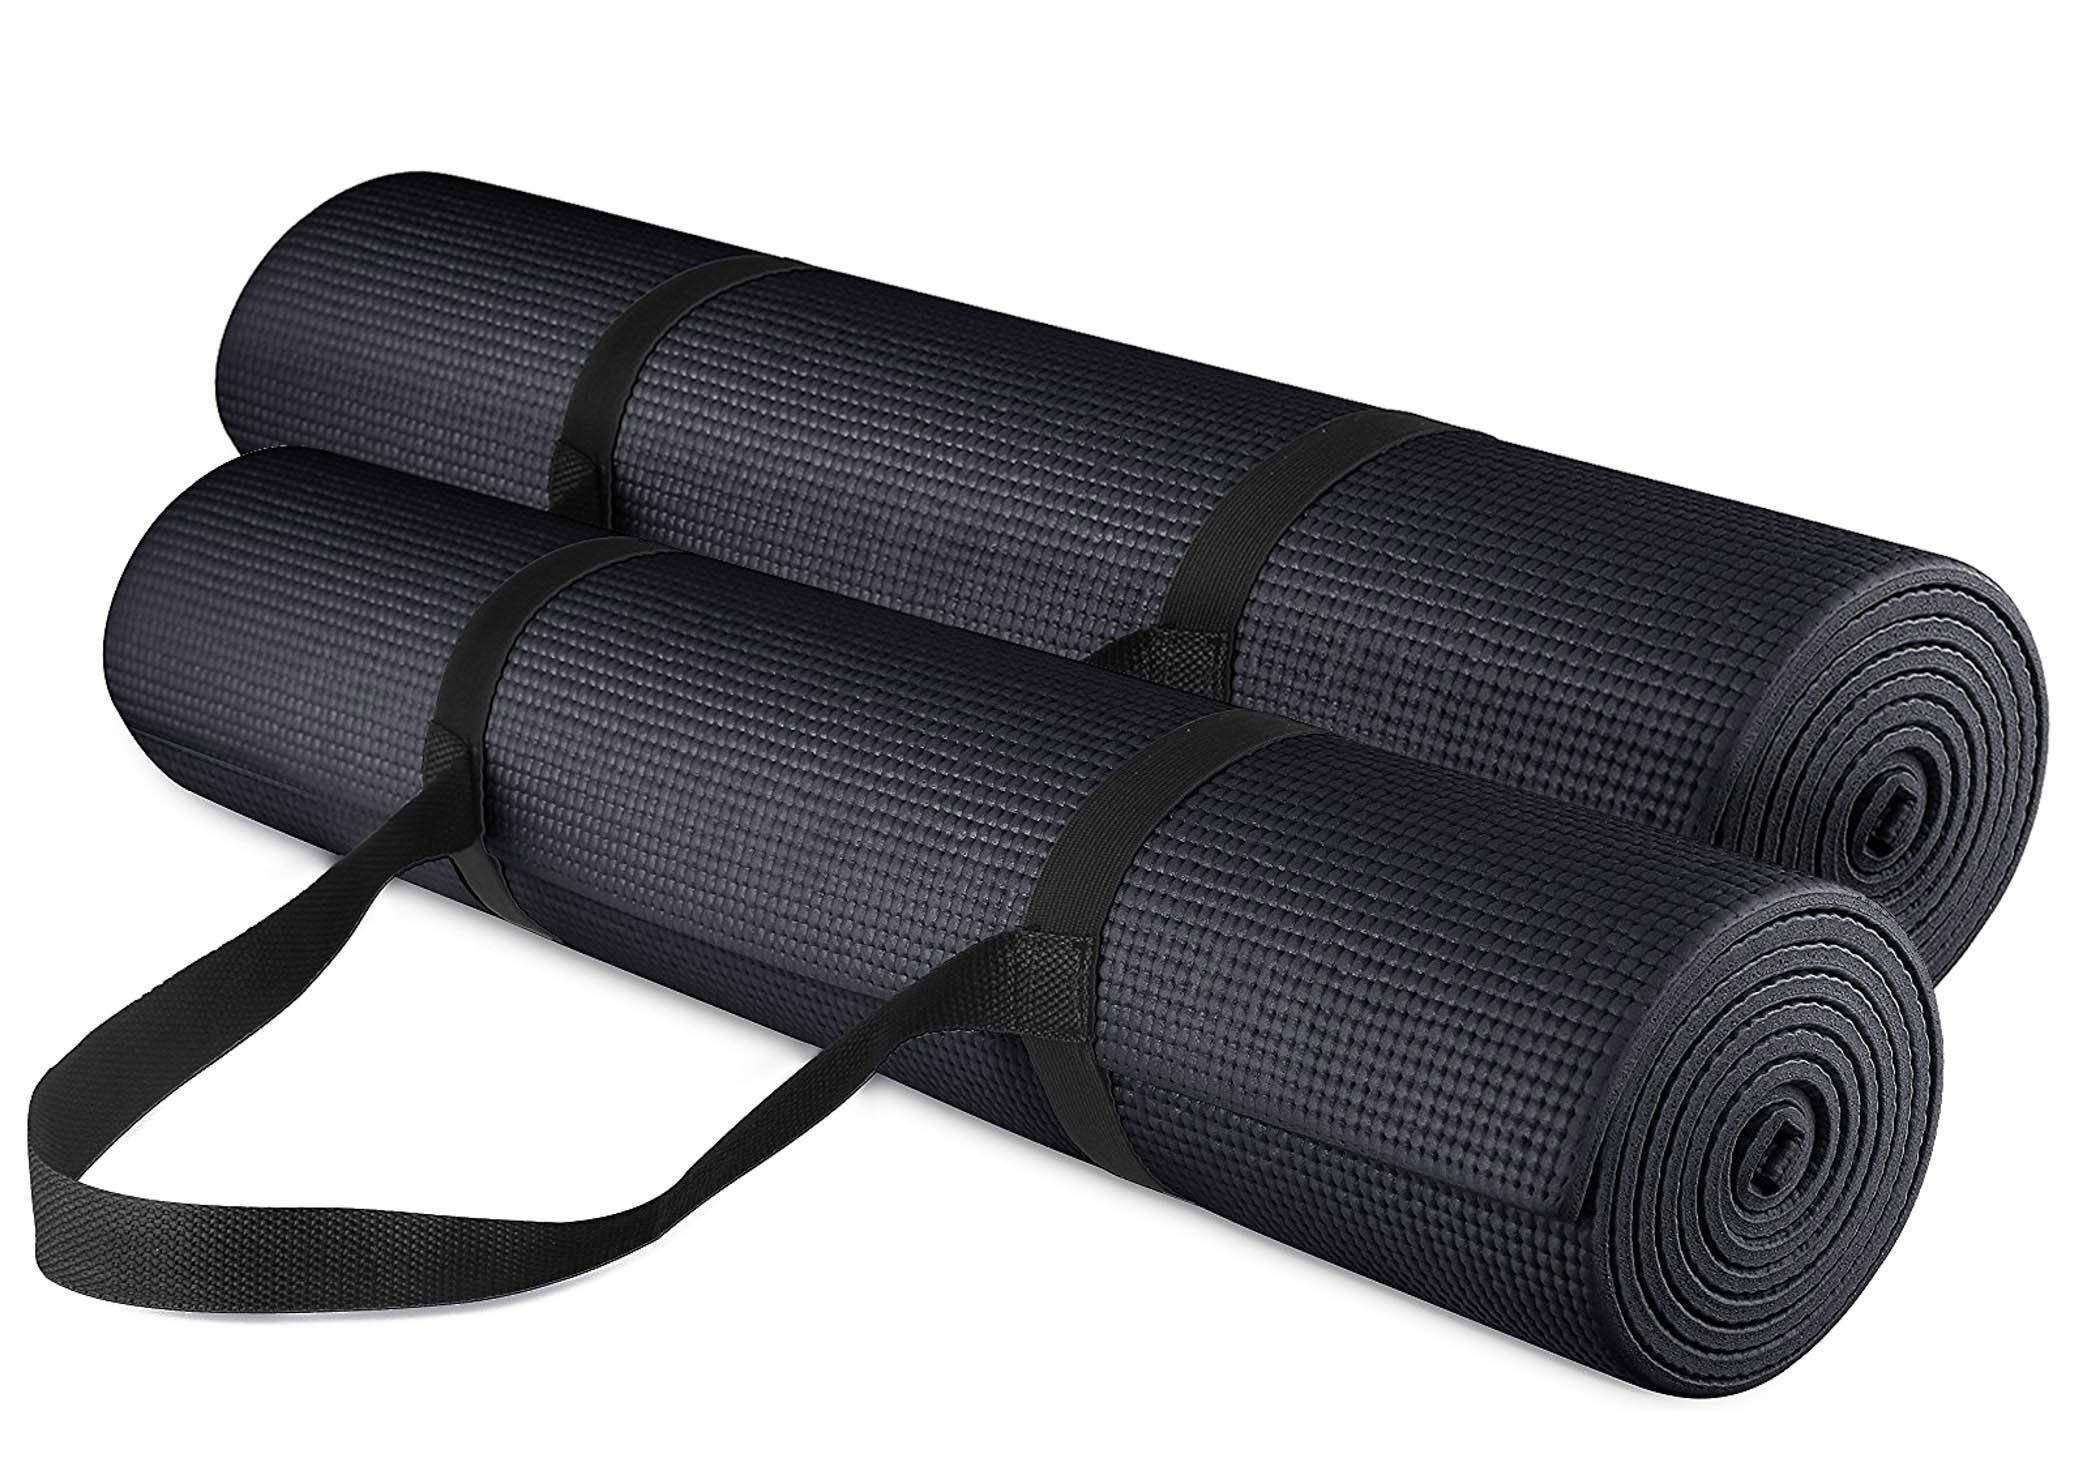 Yogu Exercise Yoga Mat 1 4 Inch Thick Multi Purpose Lightweight Pilates Fitness Mats Durable Washable Non Slip Surfaces Mat Exercises Pilates Workout Yoga Mat